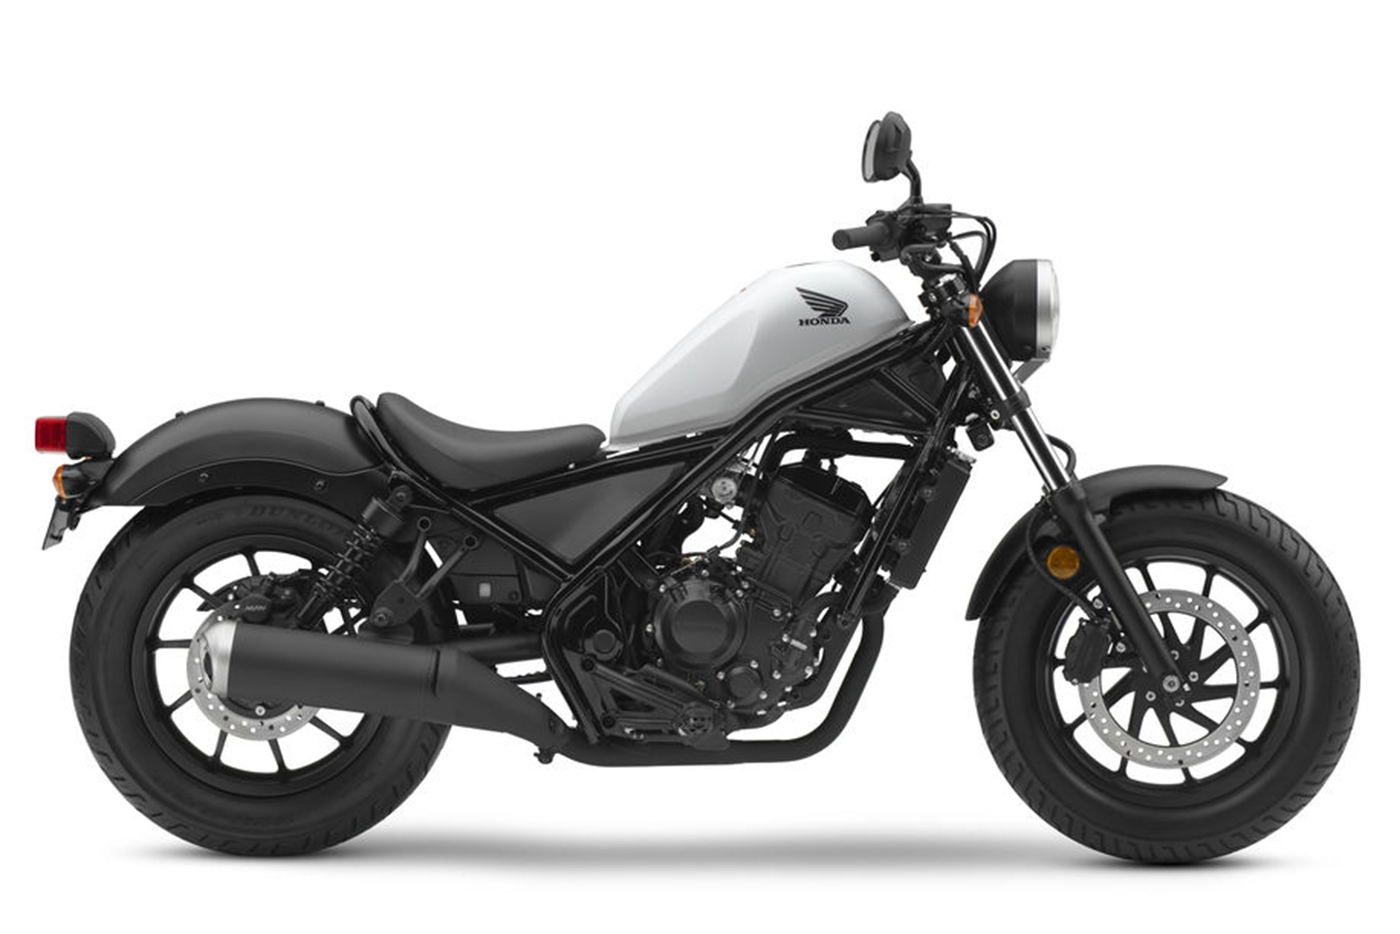 honda-rebel-250-2017-4.jpg